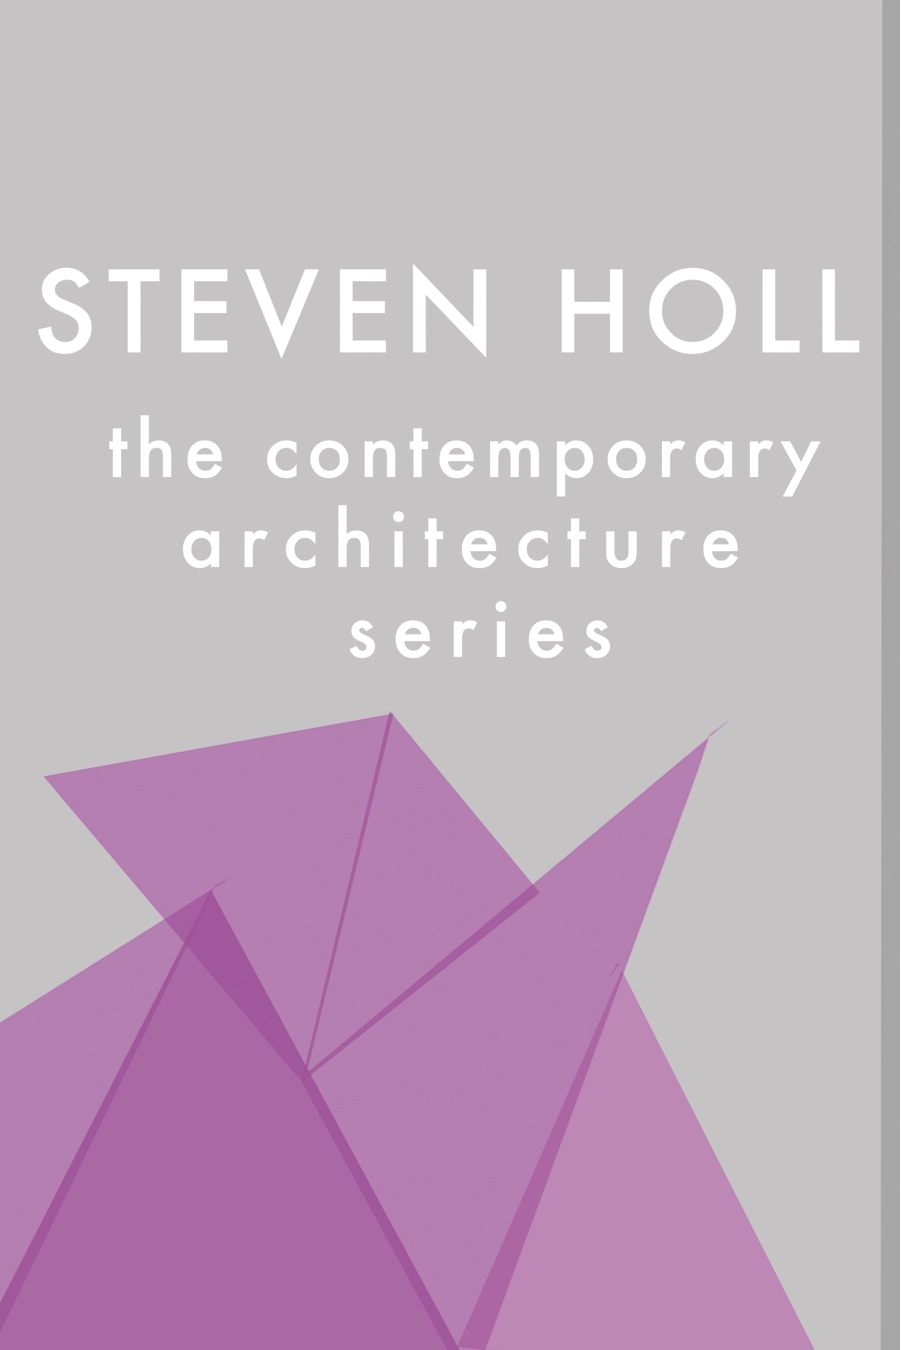 Steven Holl Project ( 1800x 2700 pxl) Graphic design.jpg